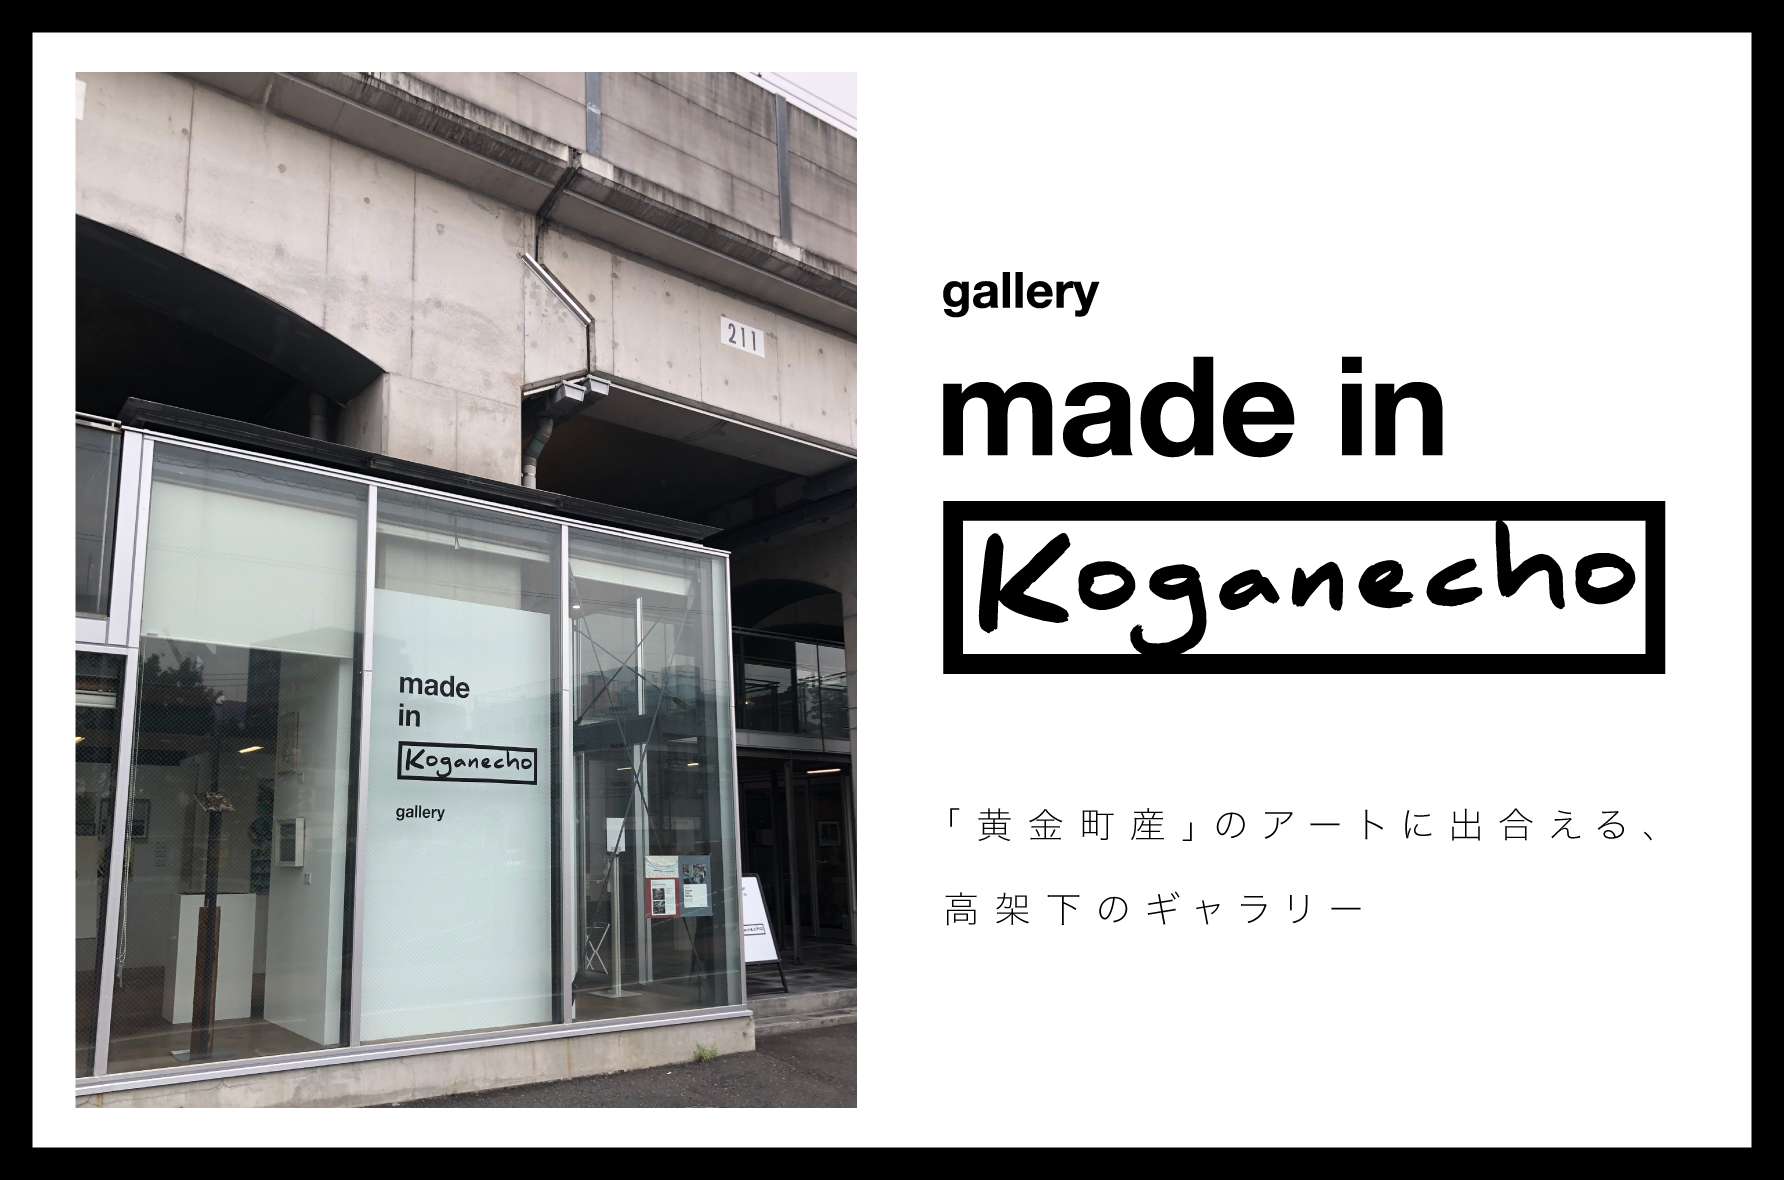 gallery made in Koganecho